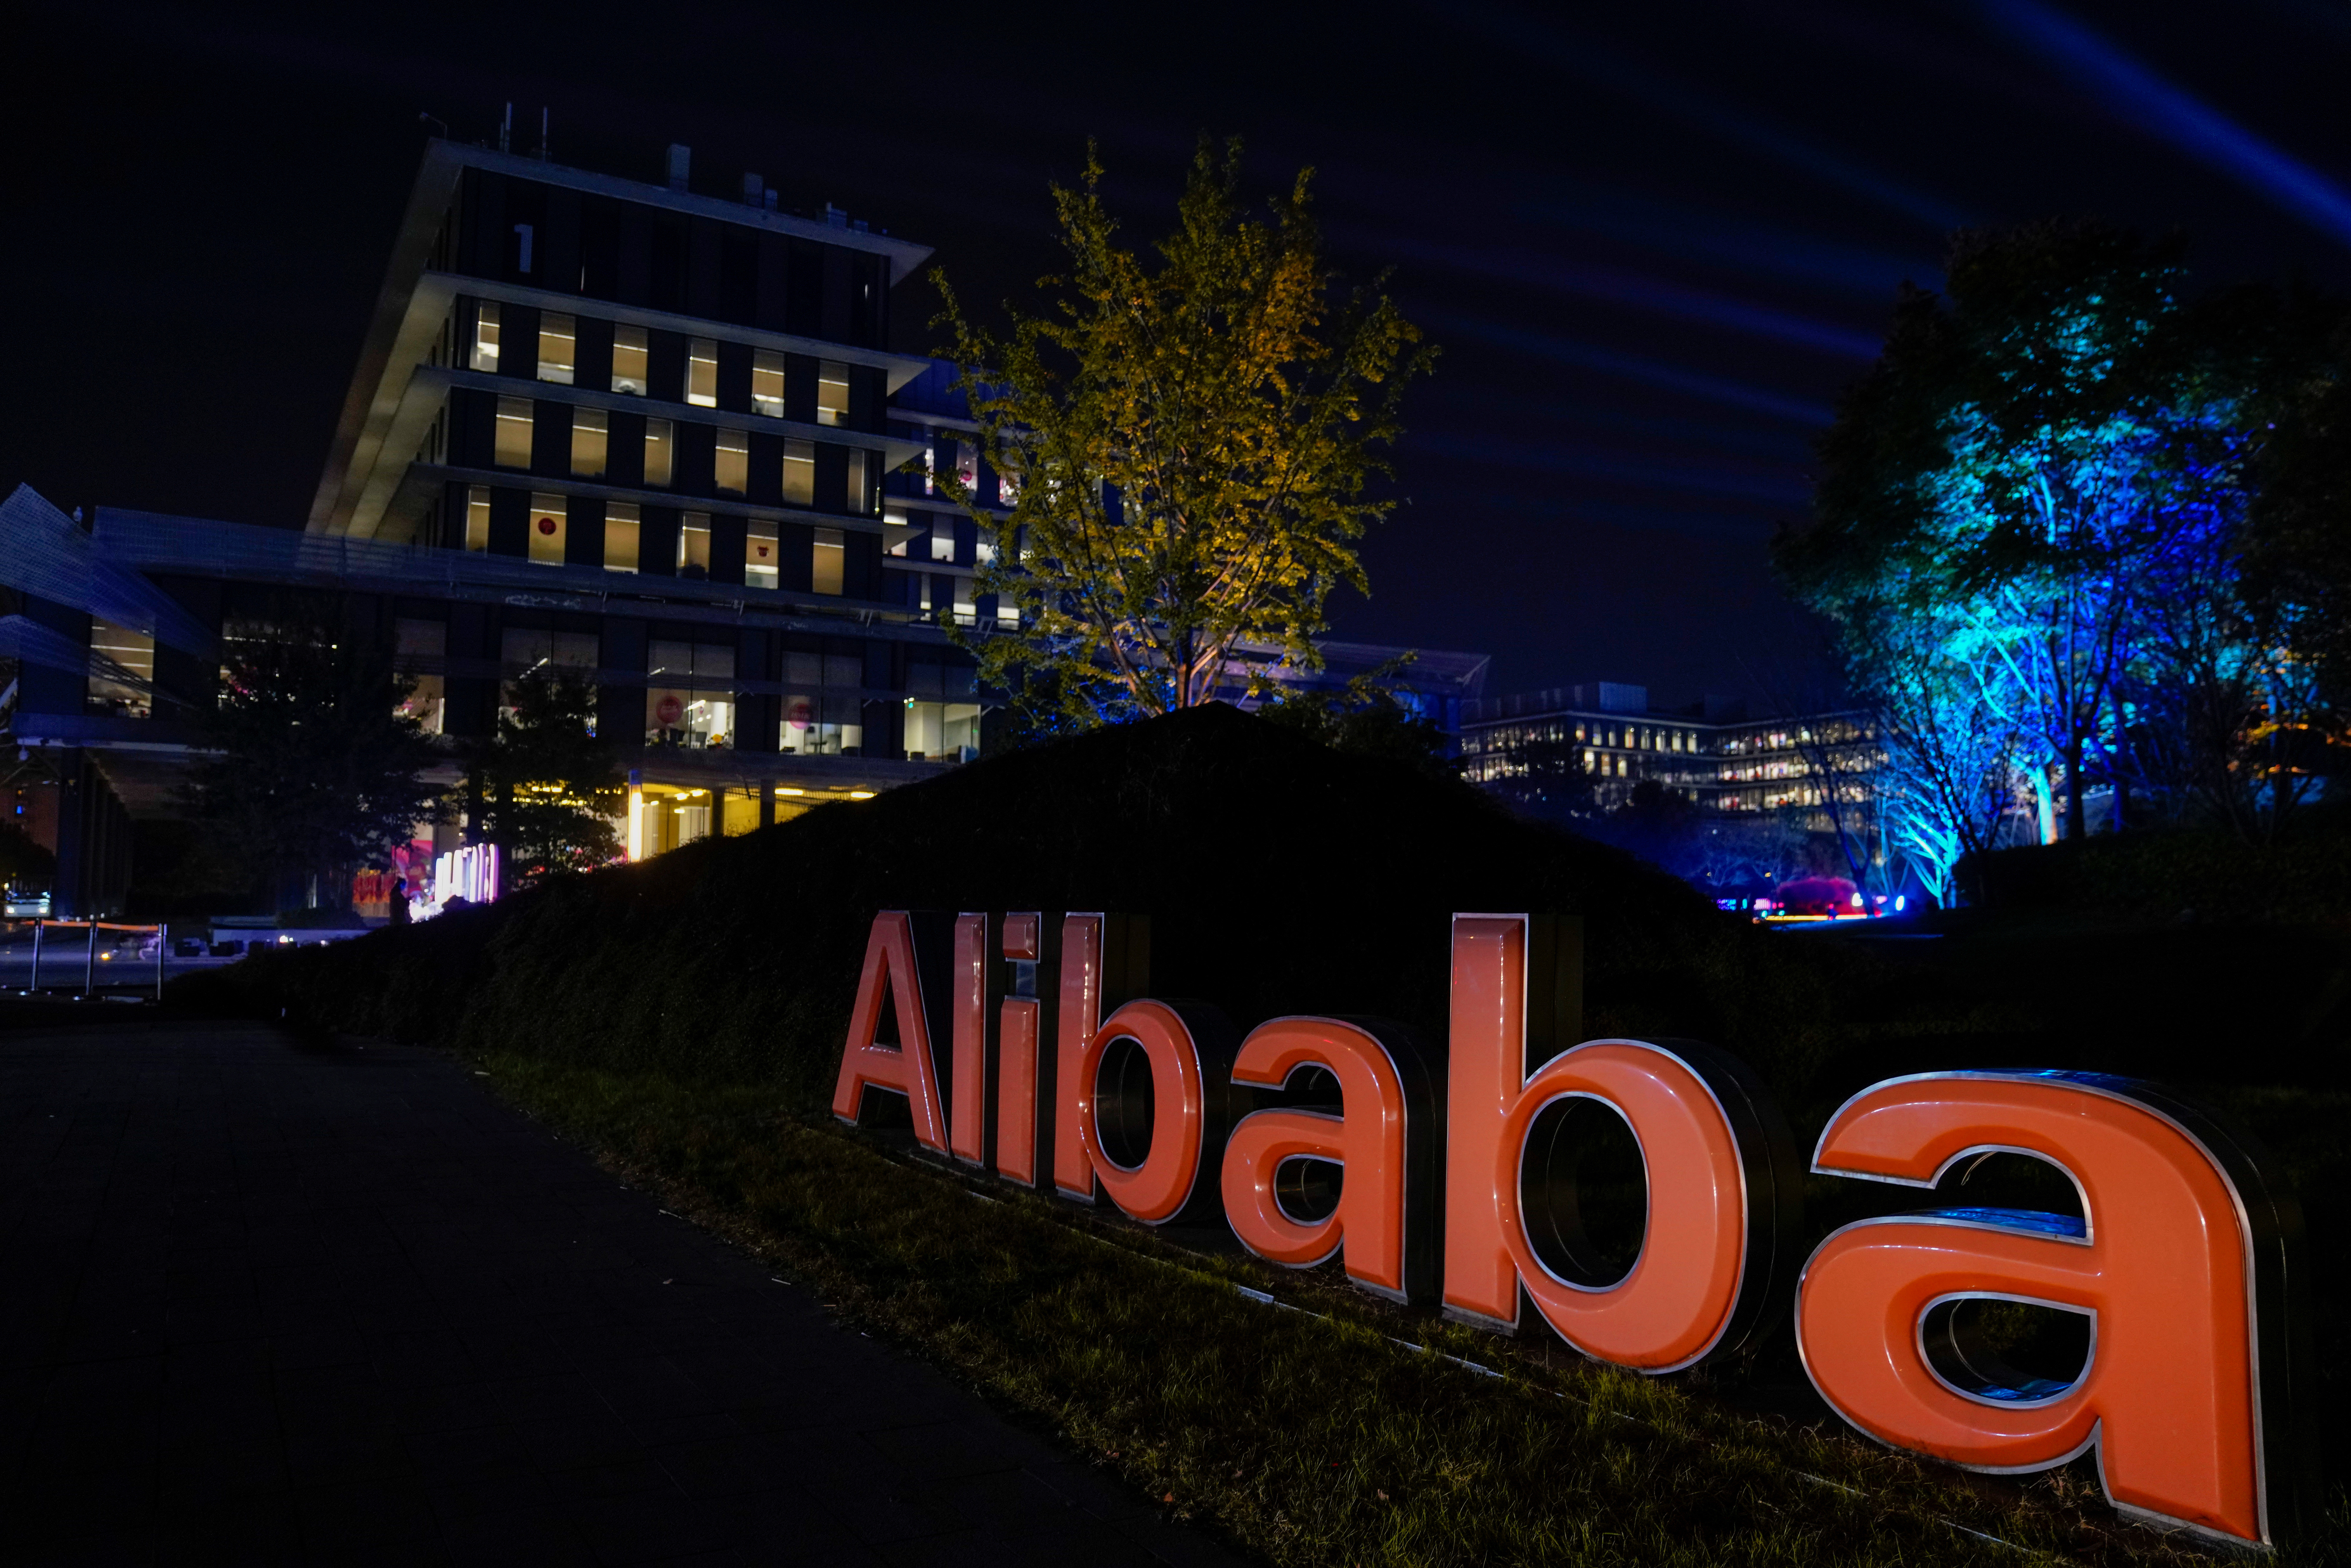 The logo of Alibaba Group is seen during Alibaba Group's 11.11 Singles' Day global shopping festival at the company's headquarters in Hangzhou, Zhejiang province, China, November 10, 2019. REUTERS/Aly Song - RC2G8D9QLYQJ